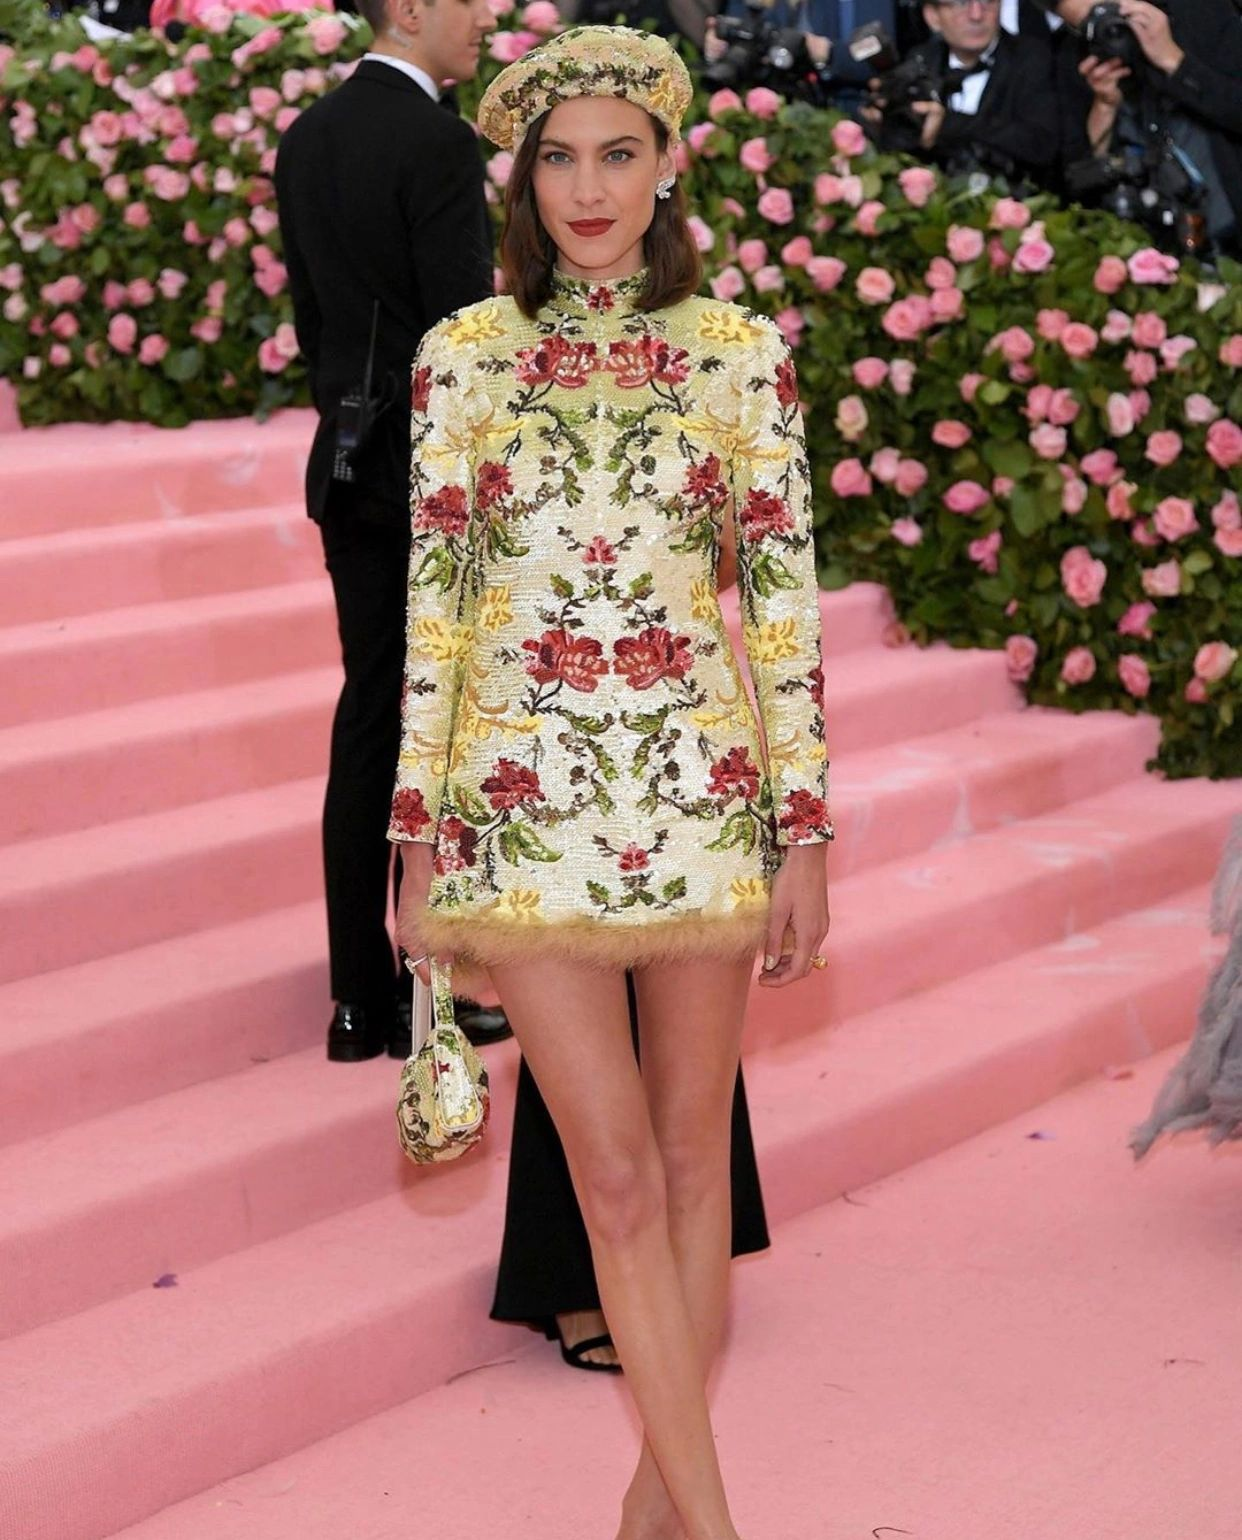 Met Gala, 2019: Alexa Chung. (Getty Images)